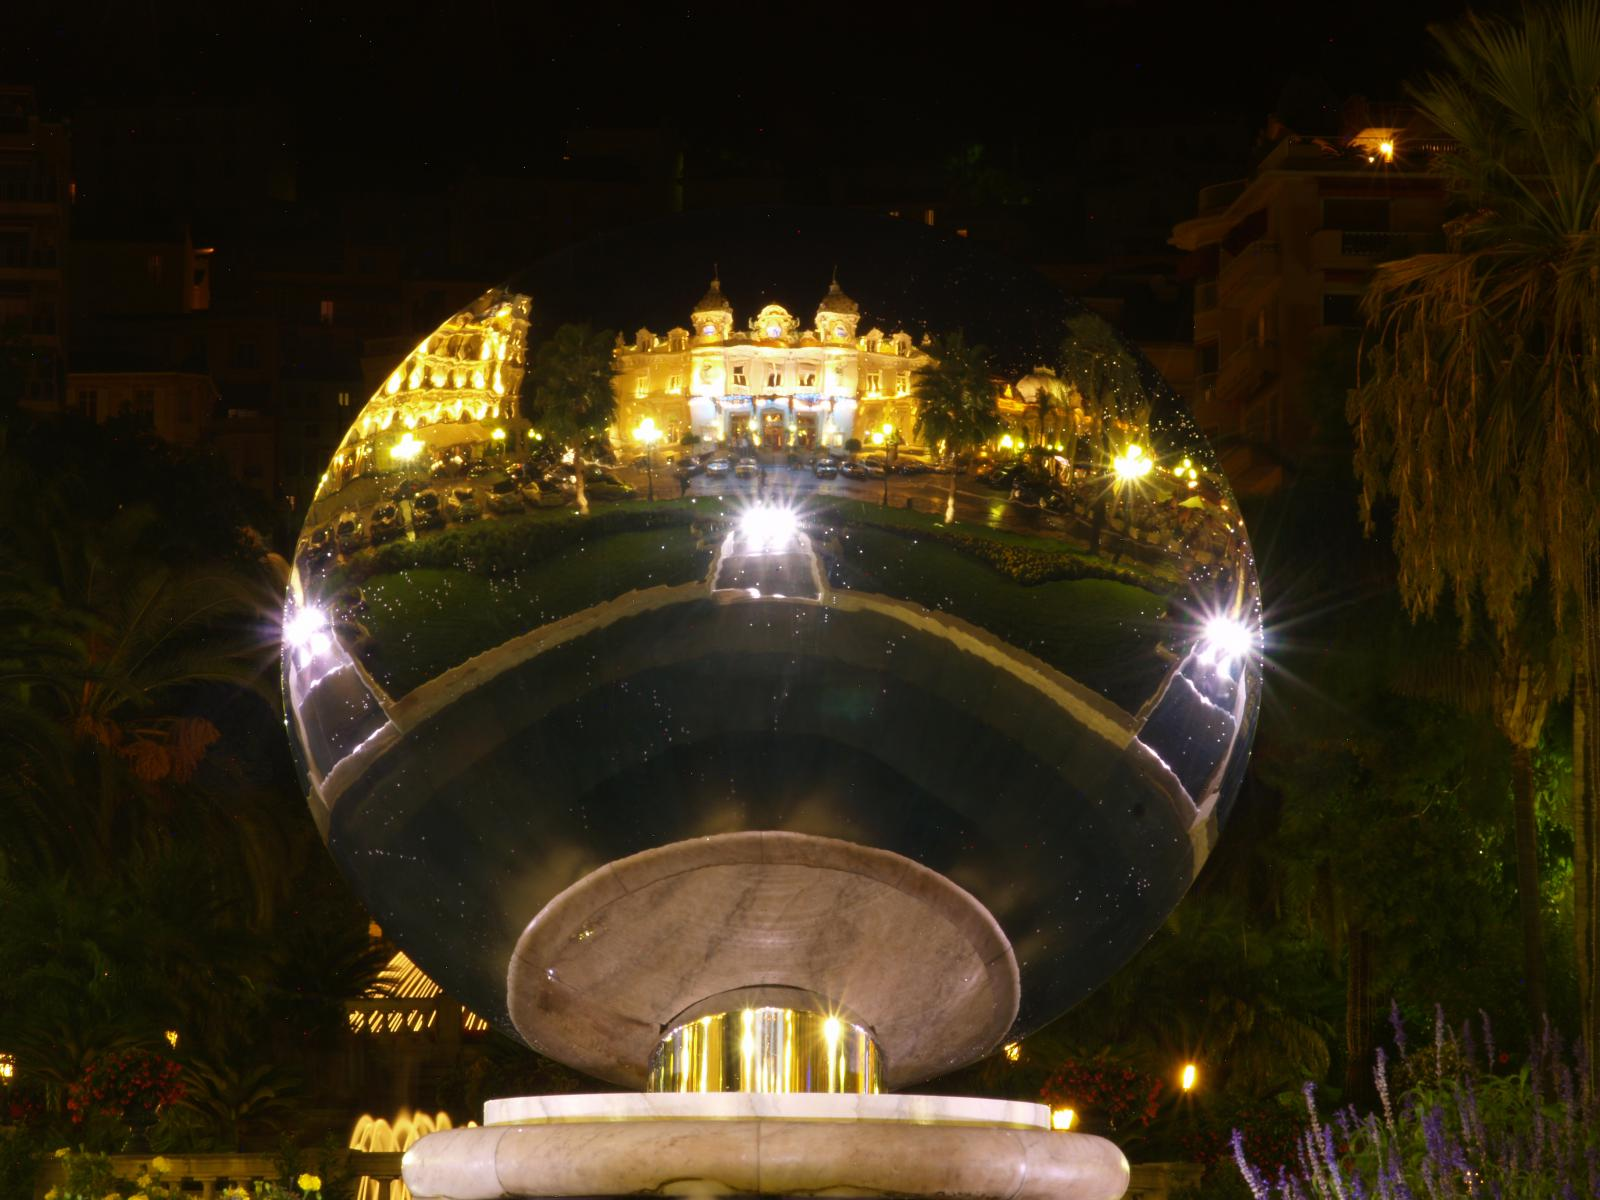 Casino in Monaco mal anders